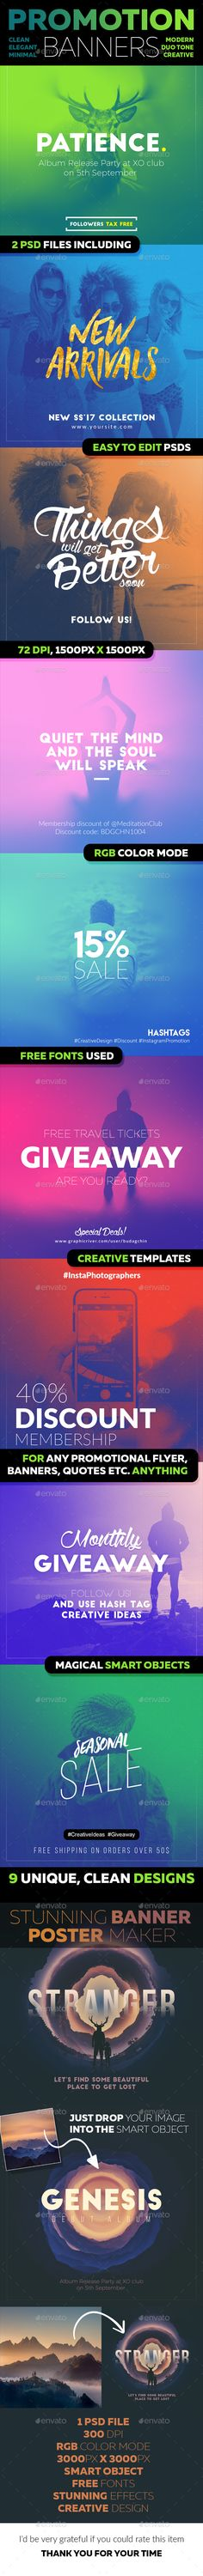 10 Creative Instagram Banners, Posters and Flyers — PSD Template #creative design #Quotes templates • Download ➝ https://graphicriver.net/item/10-creative-instagram-banners-posters-and-flyers/17844512?ref=pxcr